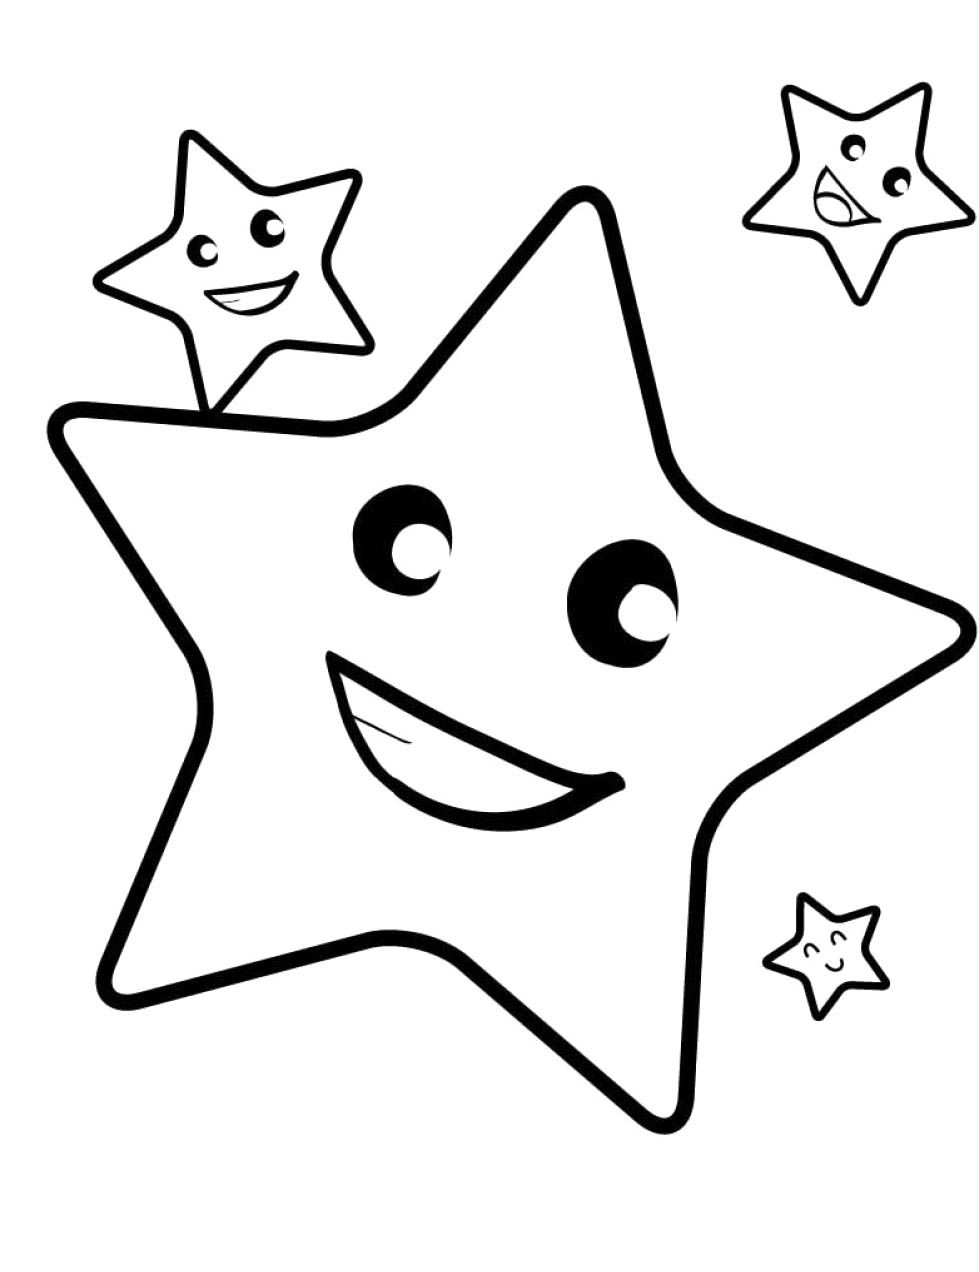 Christmas Star Smile And Always With The Other Star Coloring Page